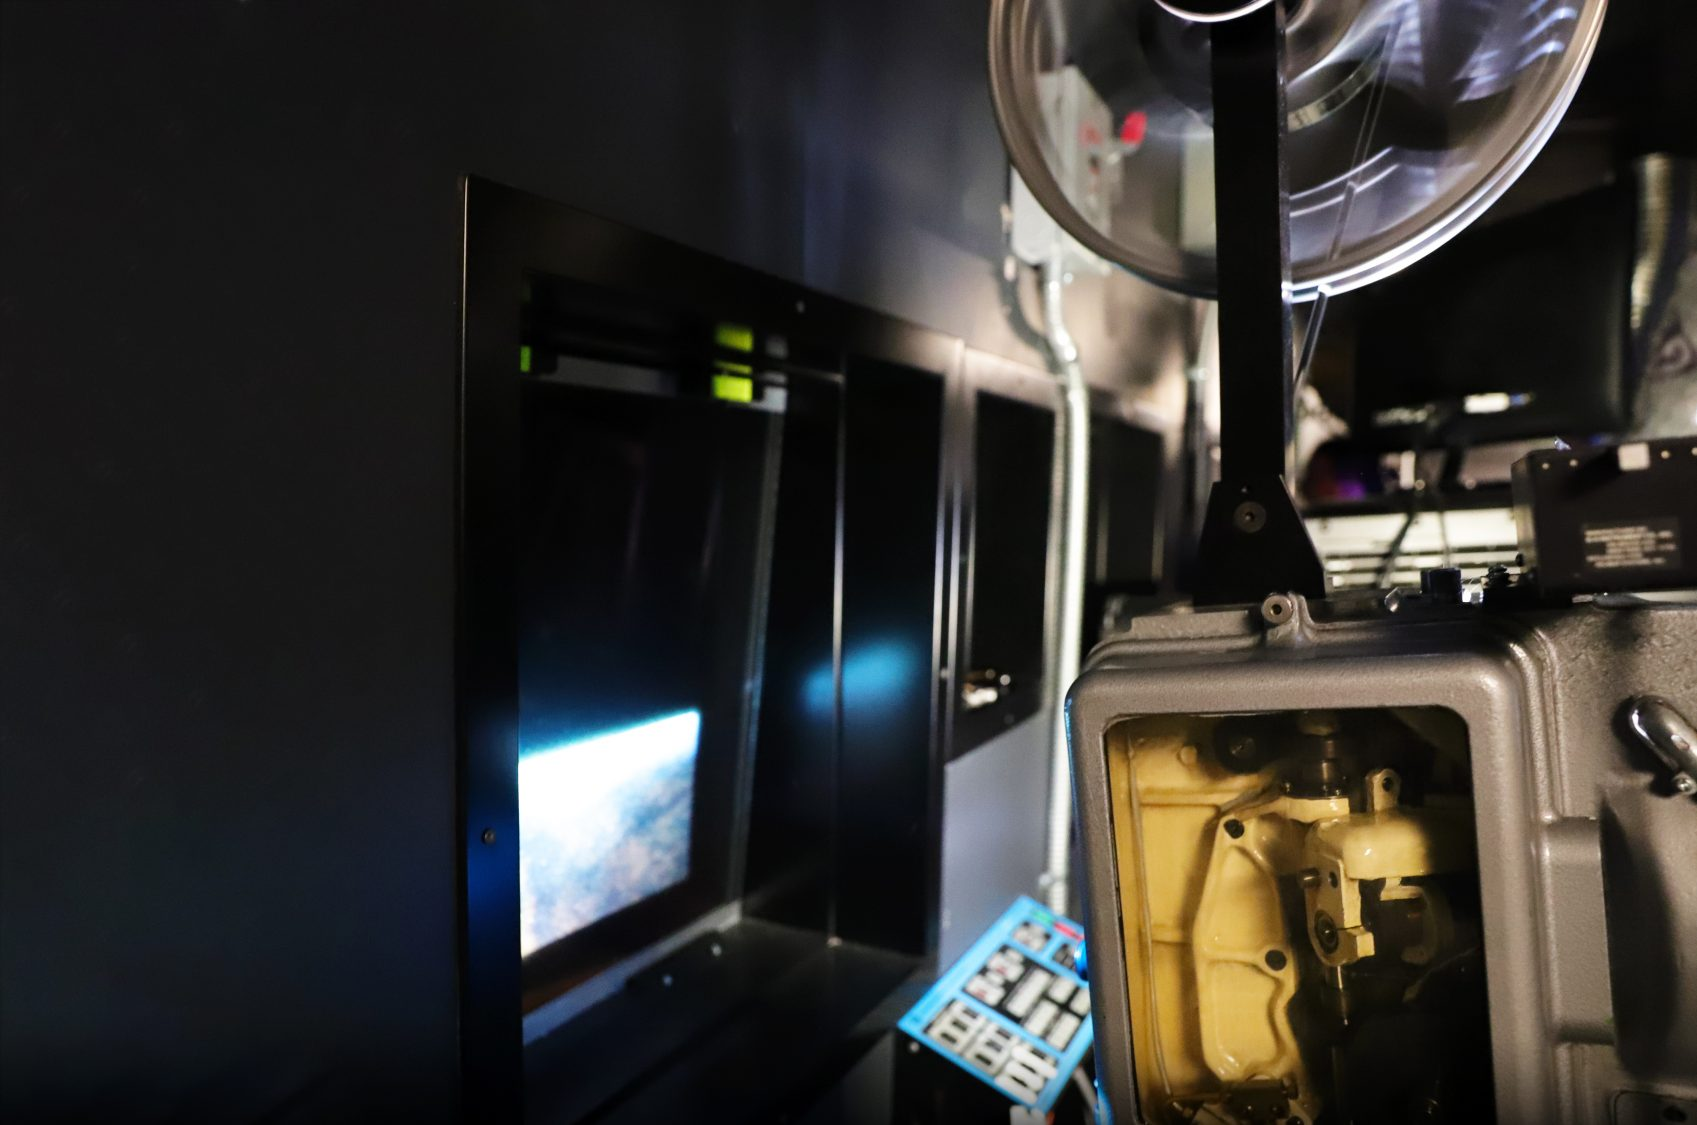 inside the projection booth at bmfi